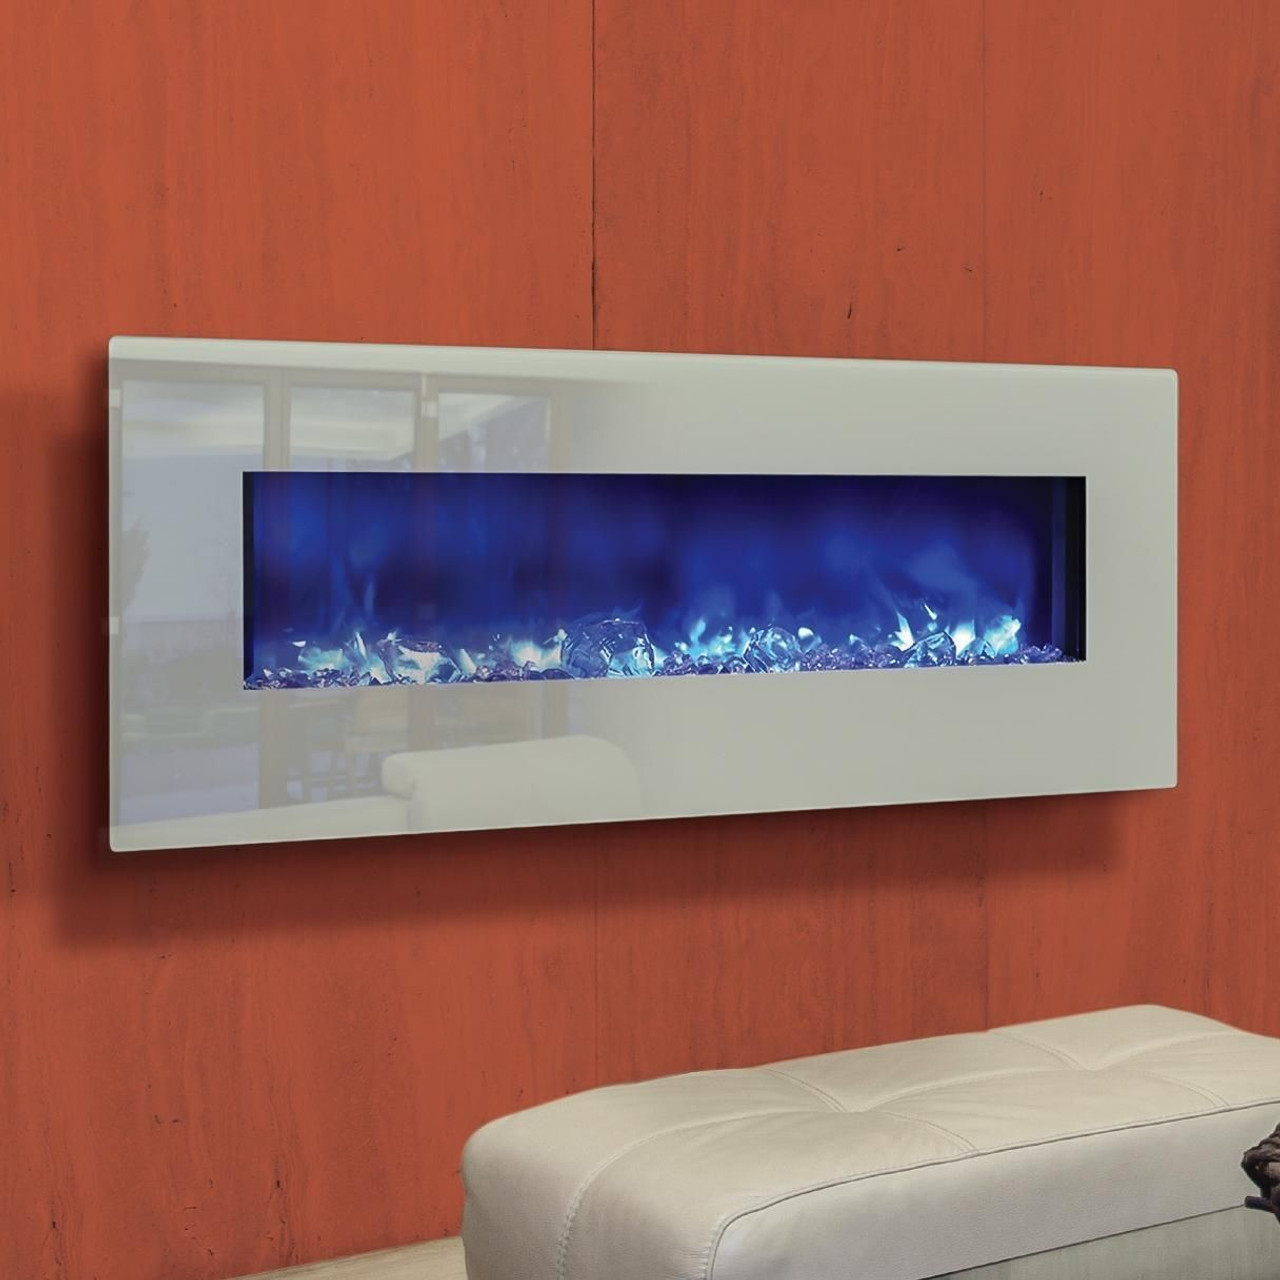 Outstanding Amantii Fire Ice Series 48 Electric Fireplace With White Glass Surround Wm Bi 48 5823 Whtgls Home Interior And Landscaping Sapresignezvosmurscom